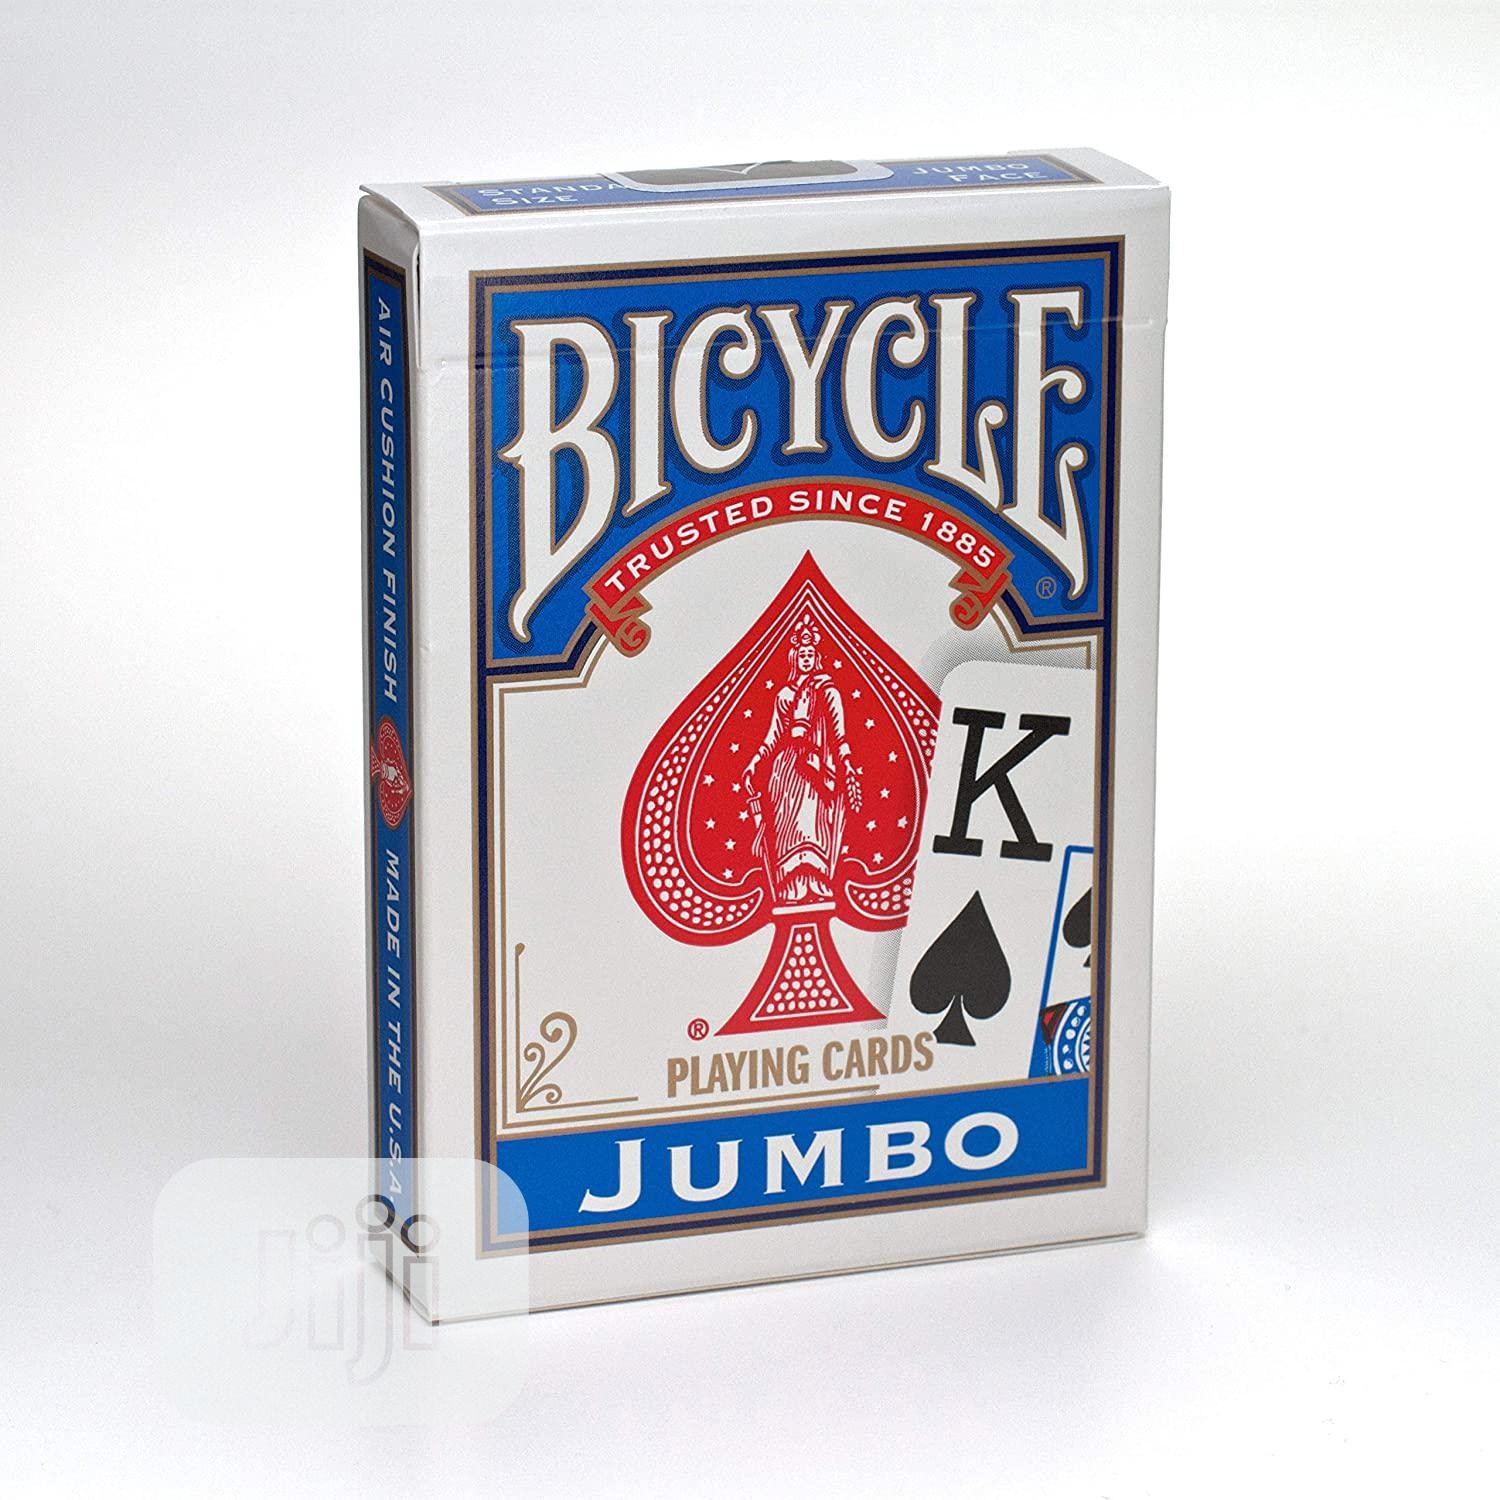 Bicycle Standard Playing Card | Books & Games for sale in Lekki, Lagos State, Nigeria